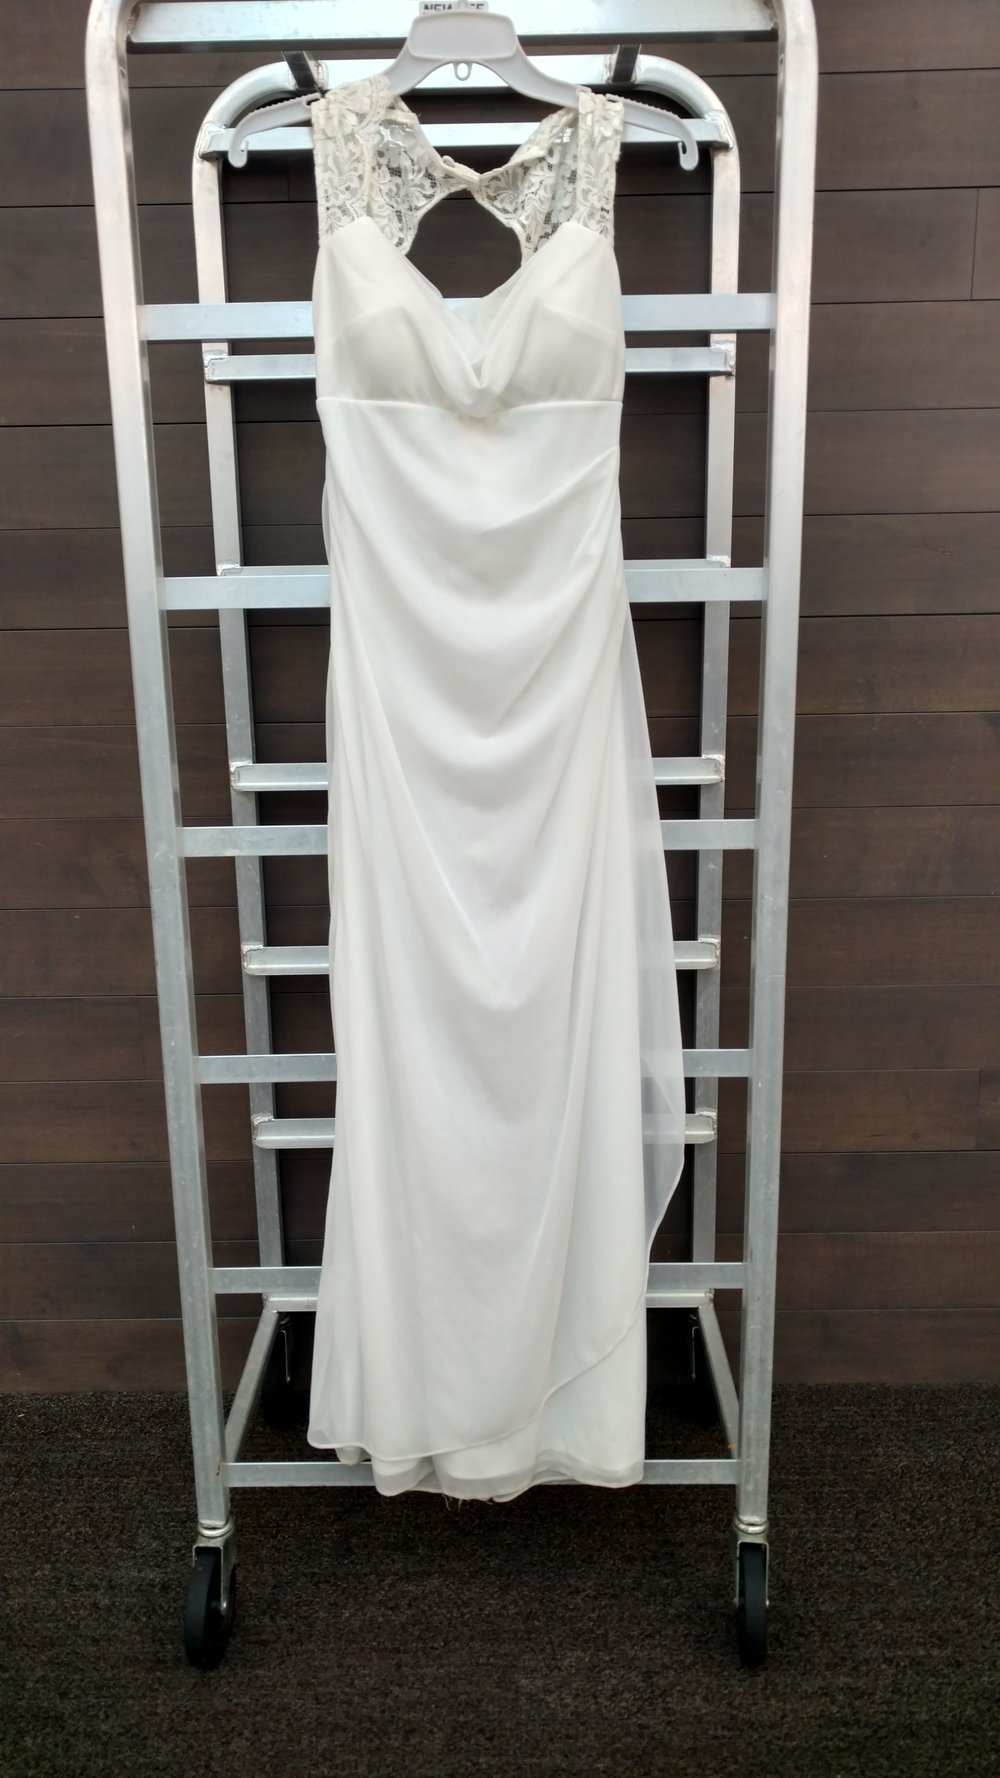 Dress 4 - Xcape - White, Size 10, Waist 26 inches, Length, 49 inches from front of dress neckline